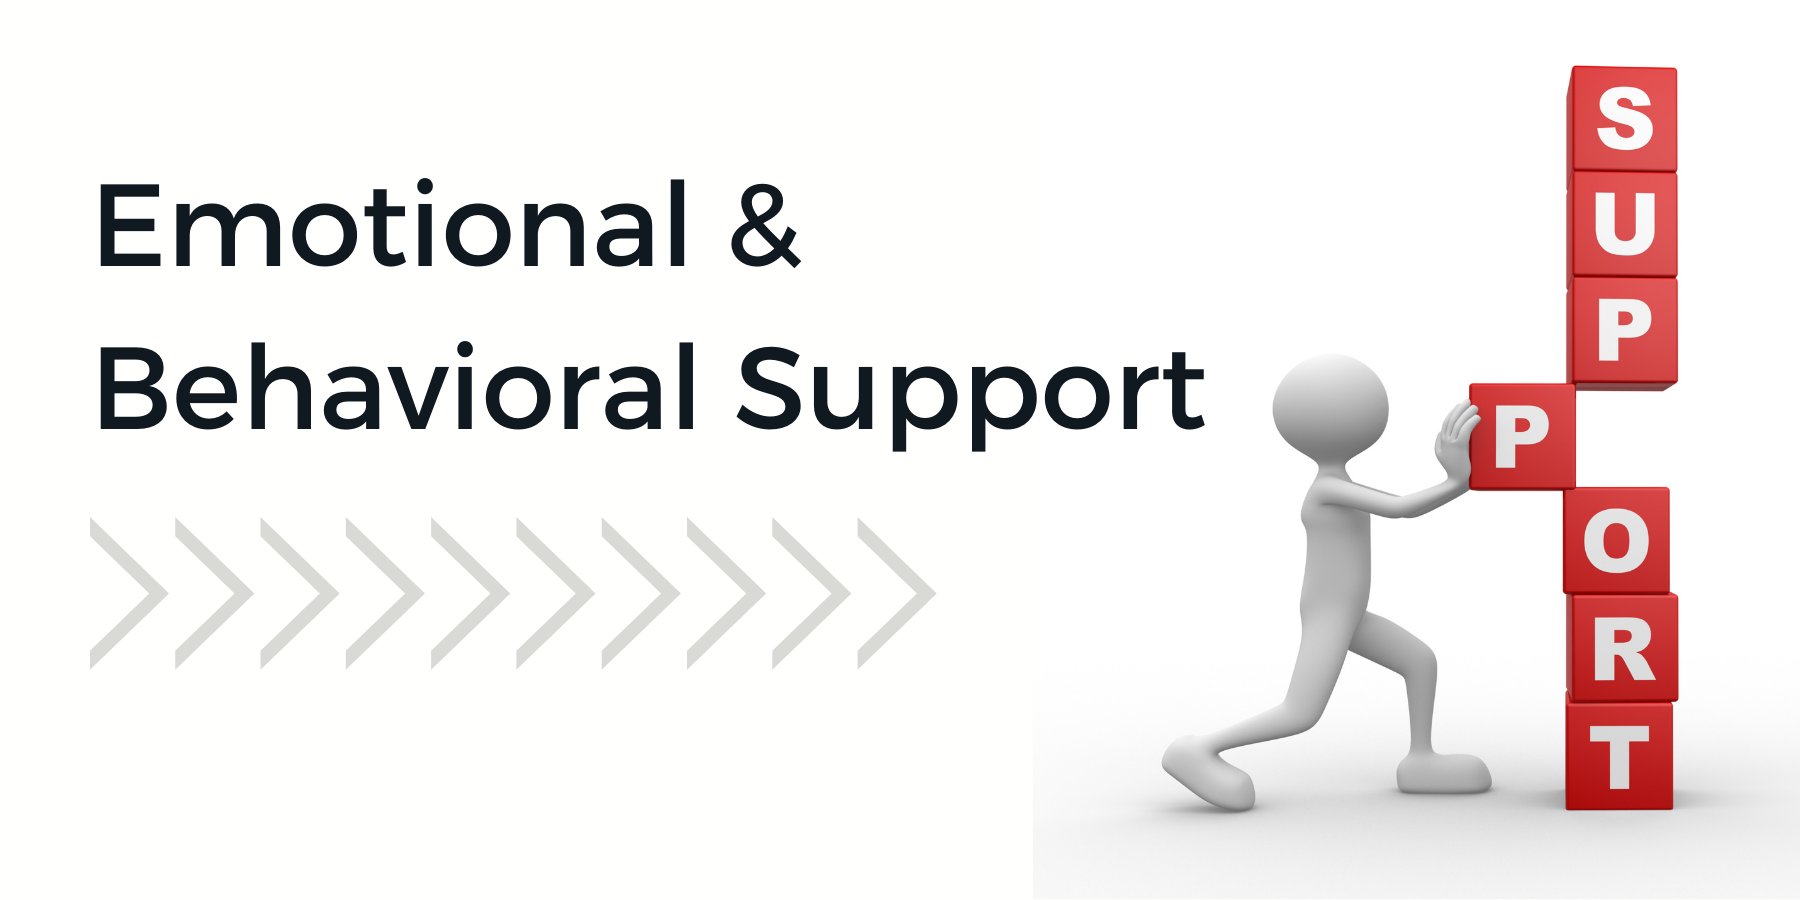 Image - emotional and behavioral support